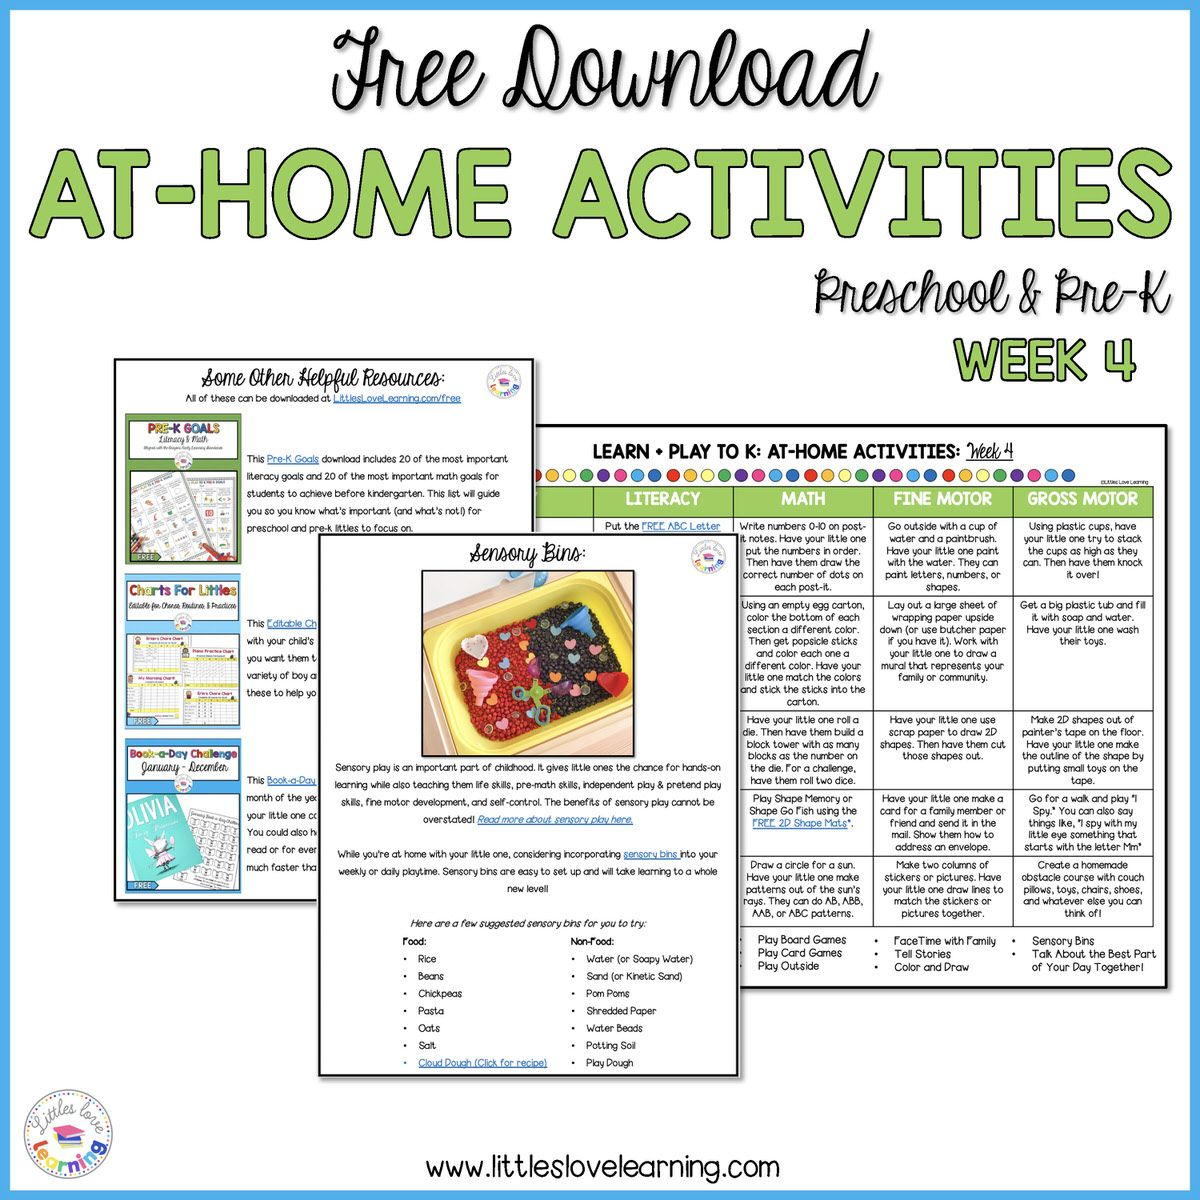 Easy Low Prep At Home Activities For Preschool And Pre K Literacy Activities Preschool Free Preschool Activities Preschool Activities Preschool reading activities at home